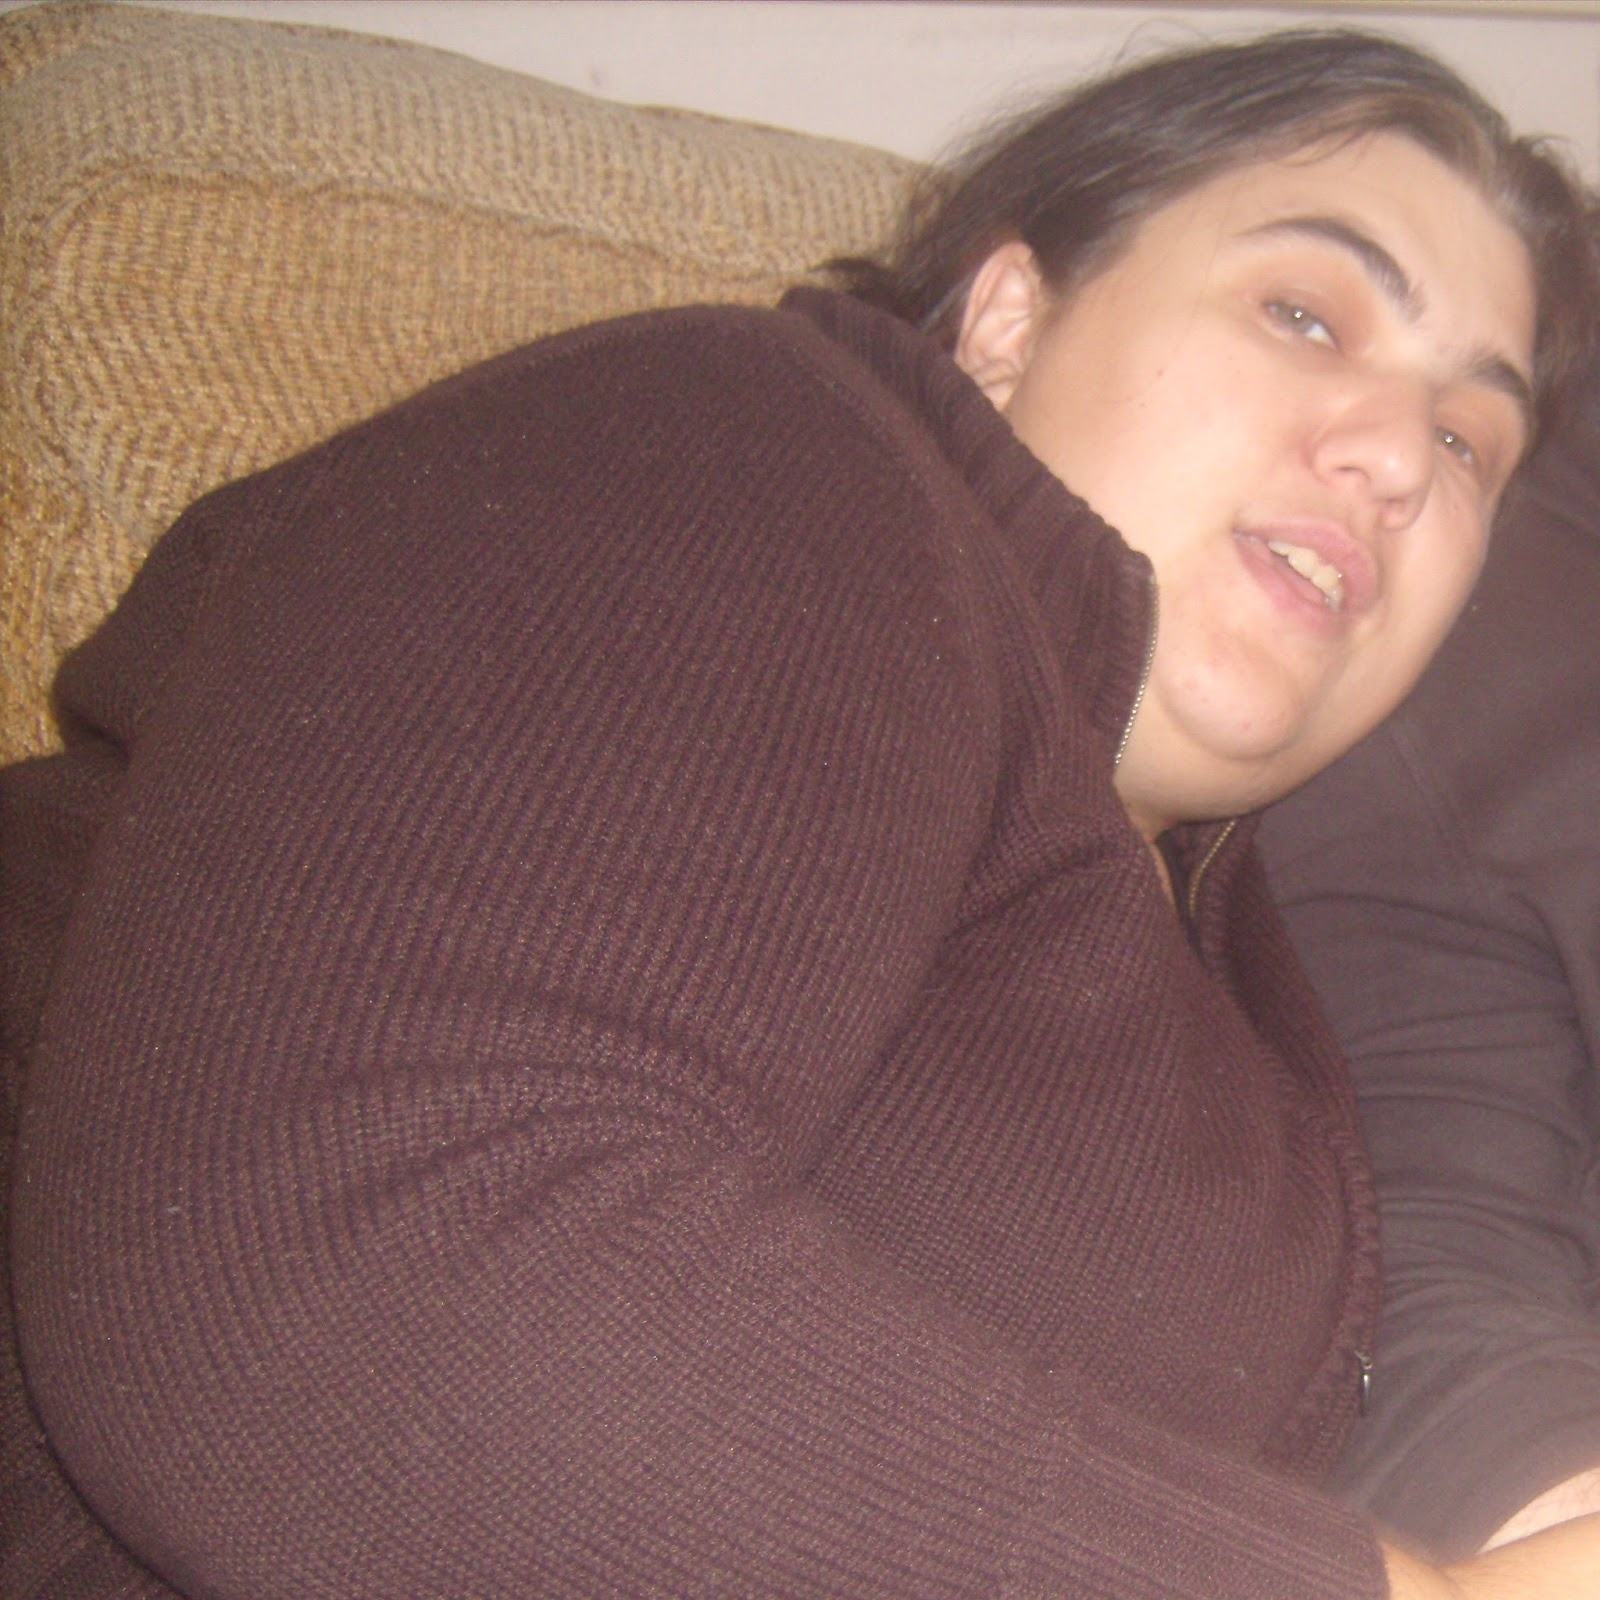 Jen in a brown cardigan morbidly obese showing sideways on just face and arm